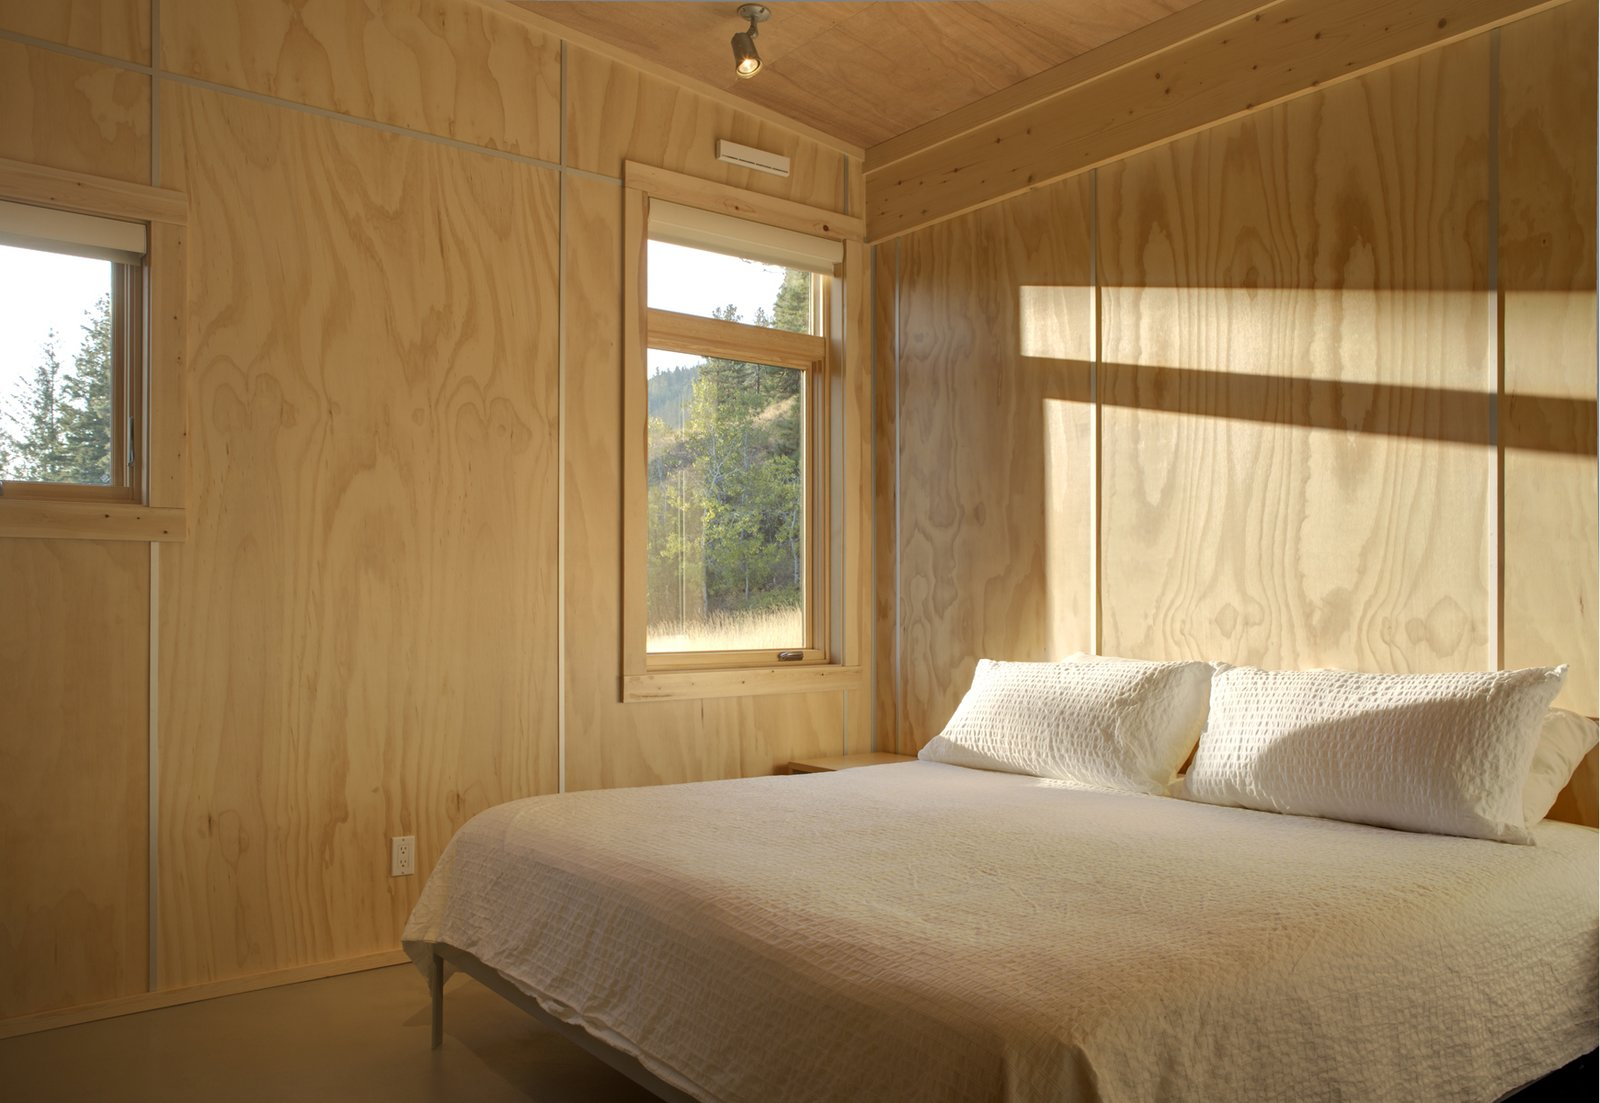 The bedroom is to the immediate right of the entrance; the architects selected plywood for interior surfacing for the warm tones it provided. The aluminum spacers allow for easy installation—they have greater tolerances for gaps as compared to other joints—while doubling as a decorative element.  Our Favorite Bedrooms